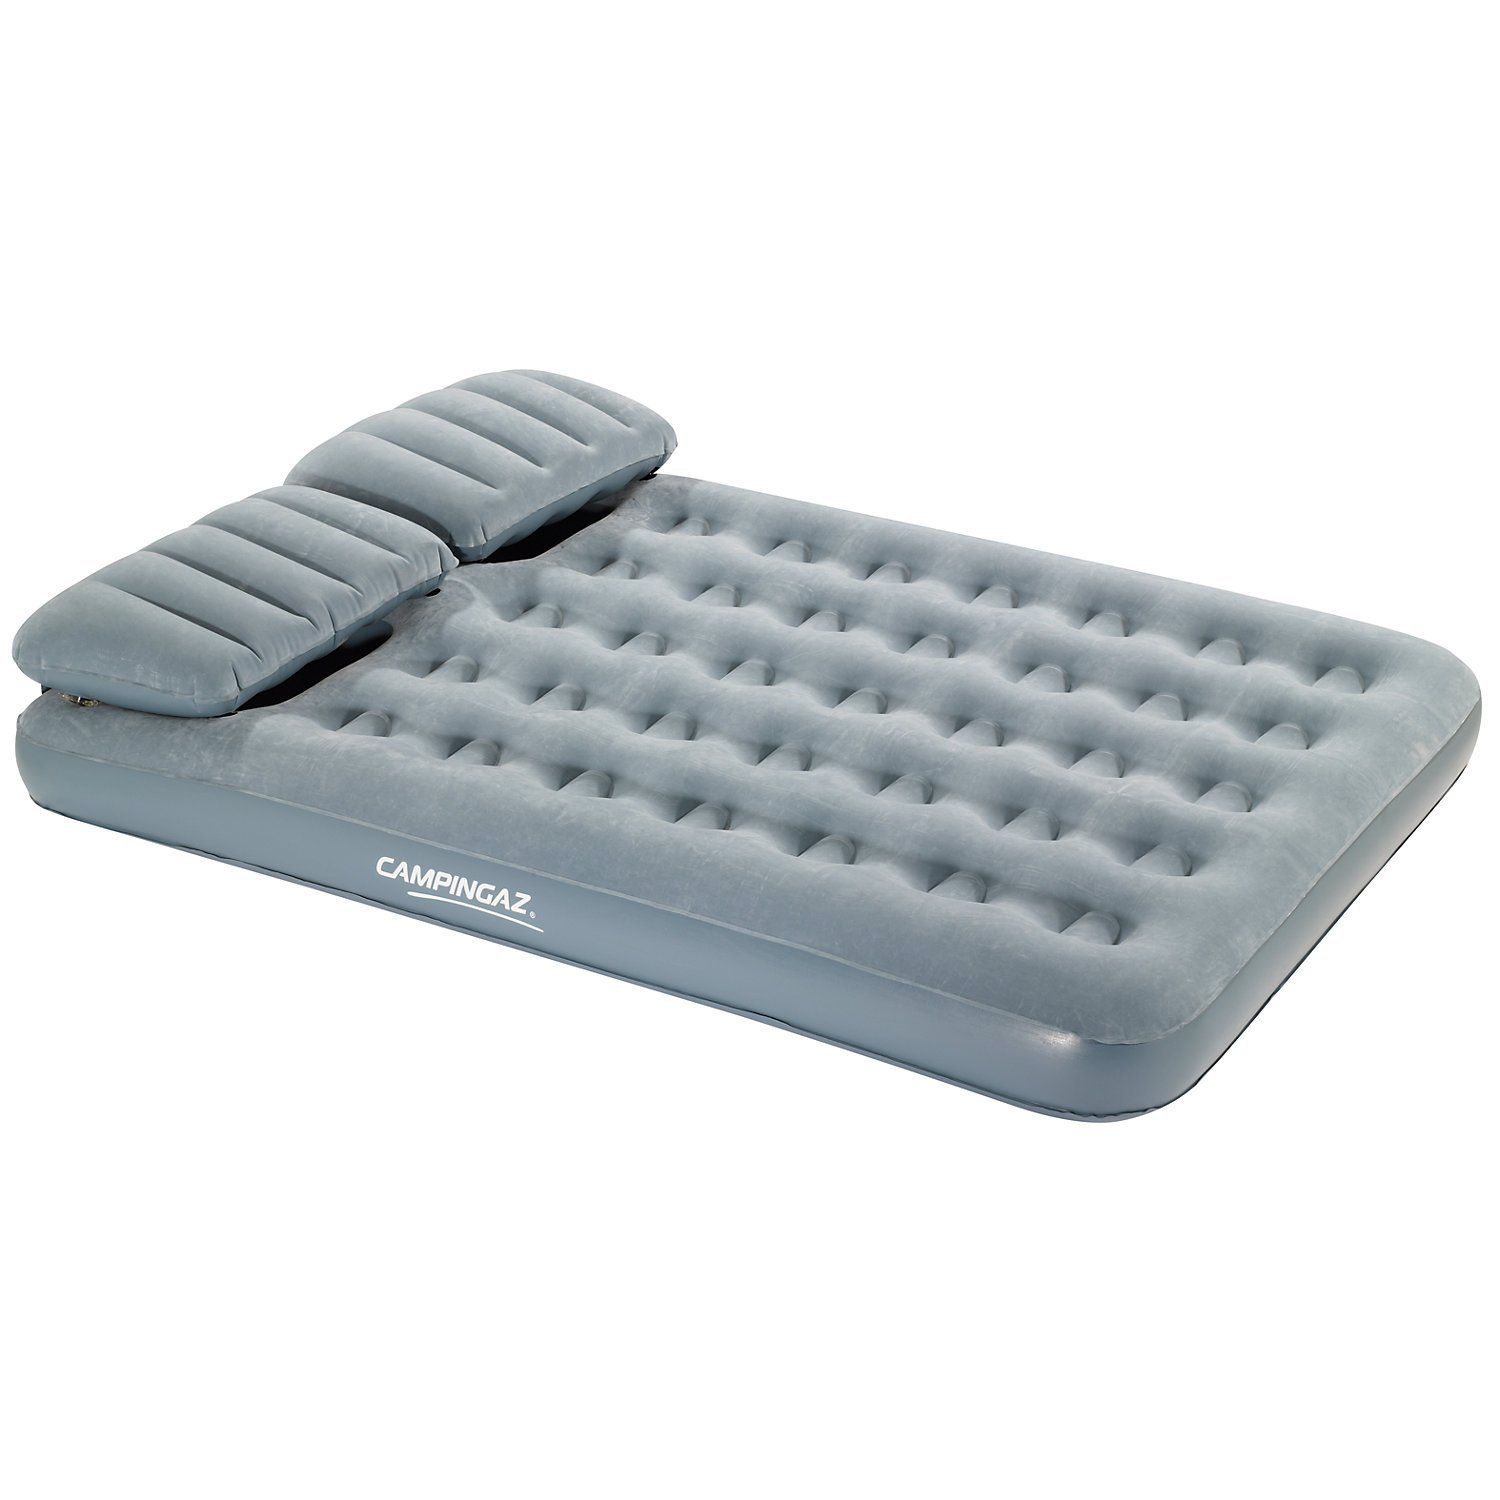 matelas intex 2 places interesting le lit gonflable idal. Black Bedroom Furniture Sets. Home Design Ideas